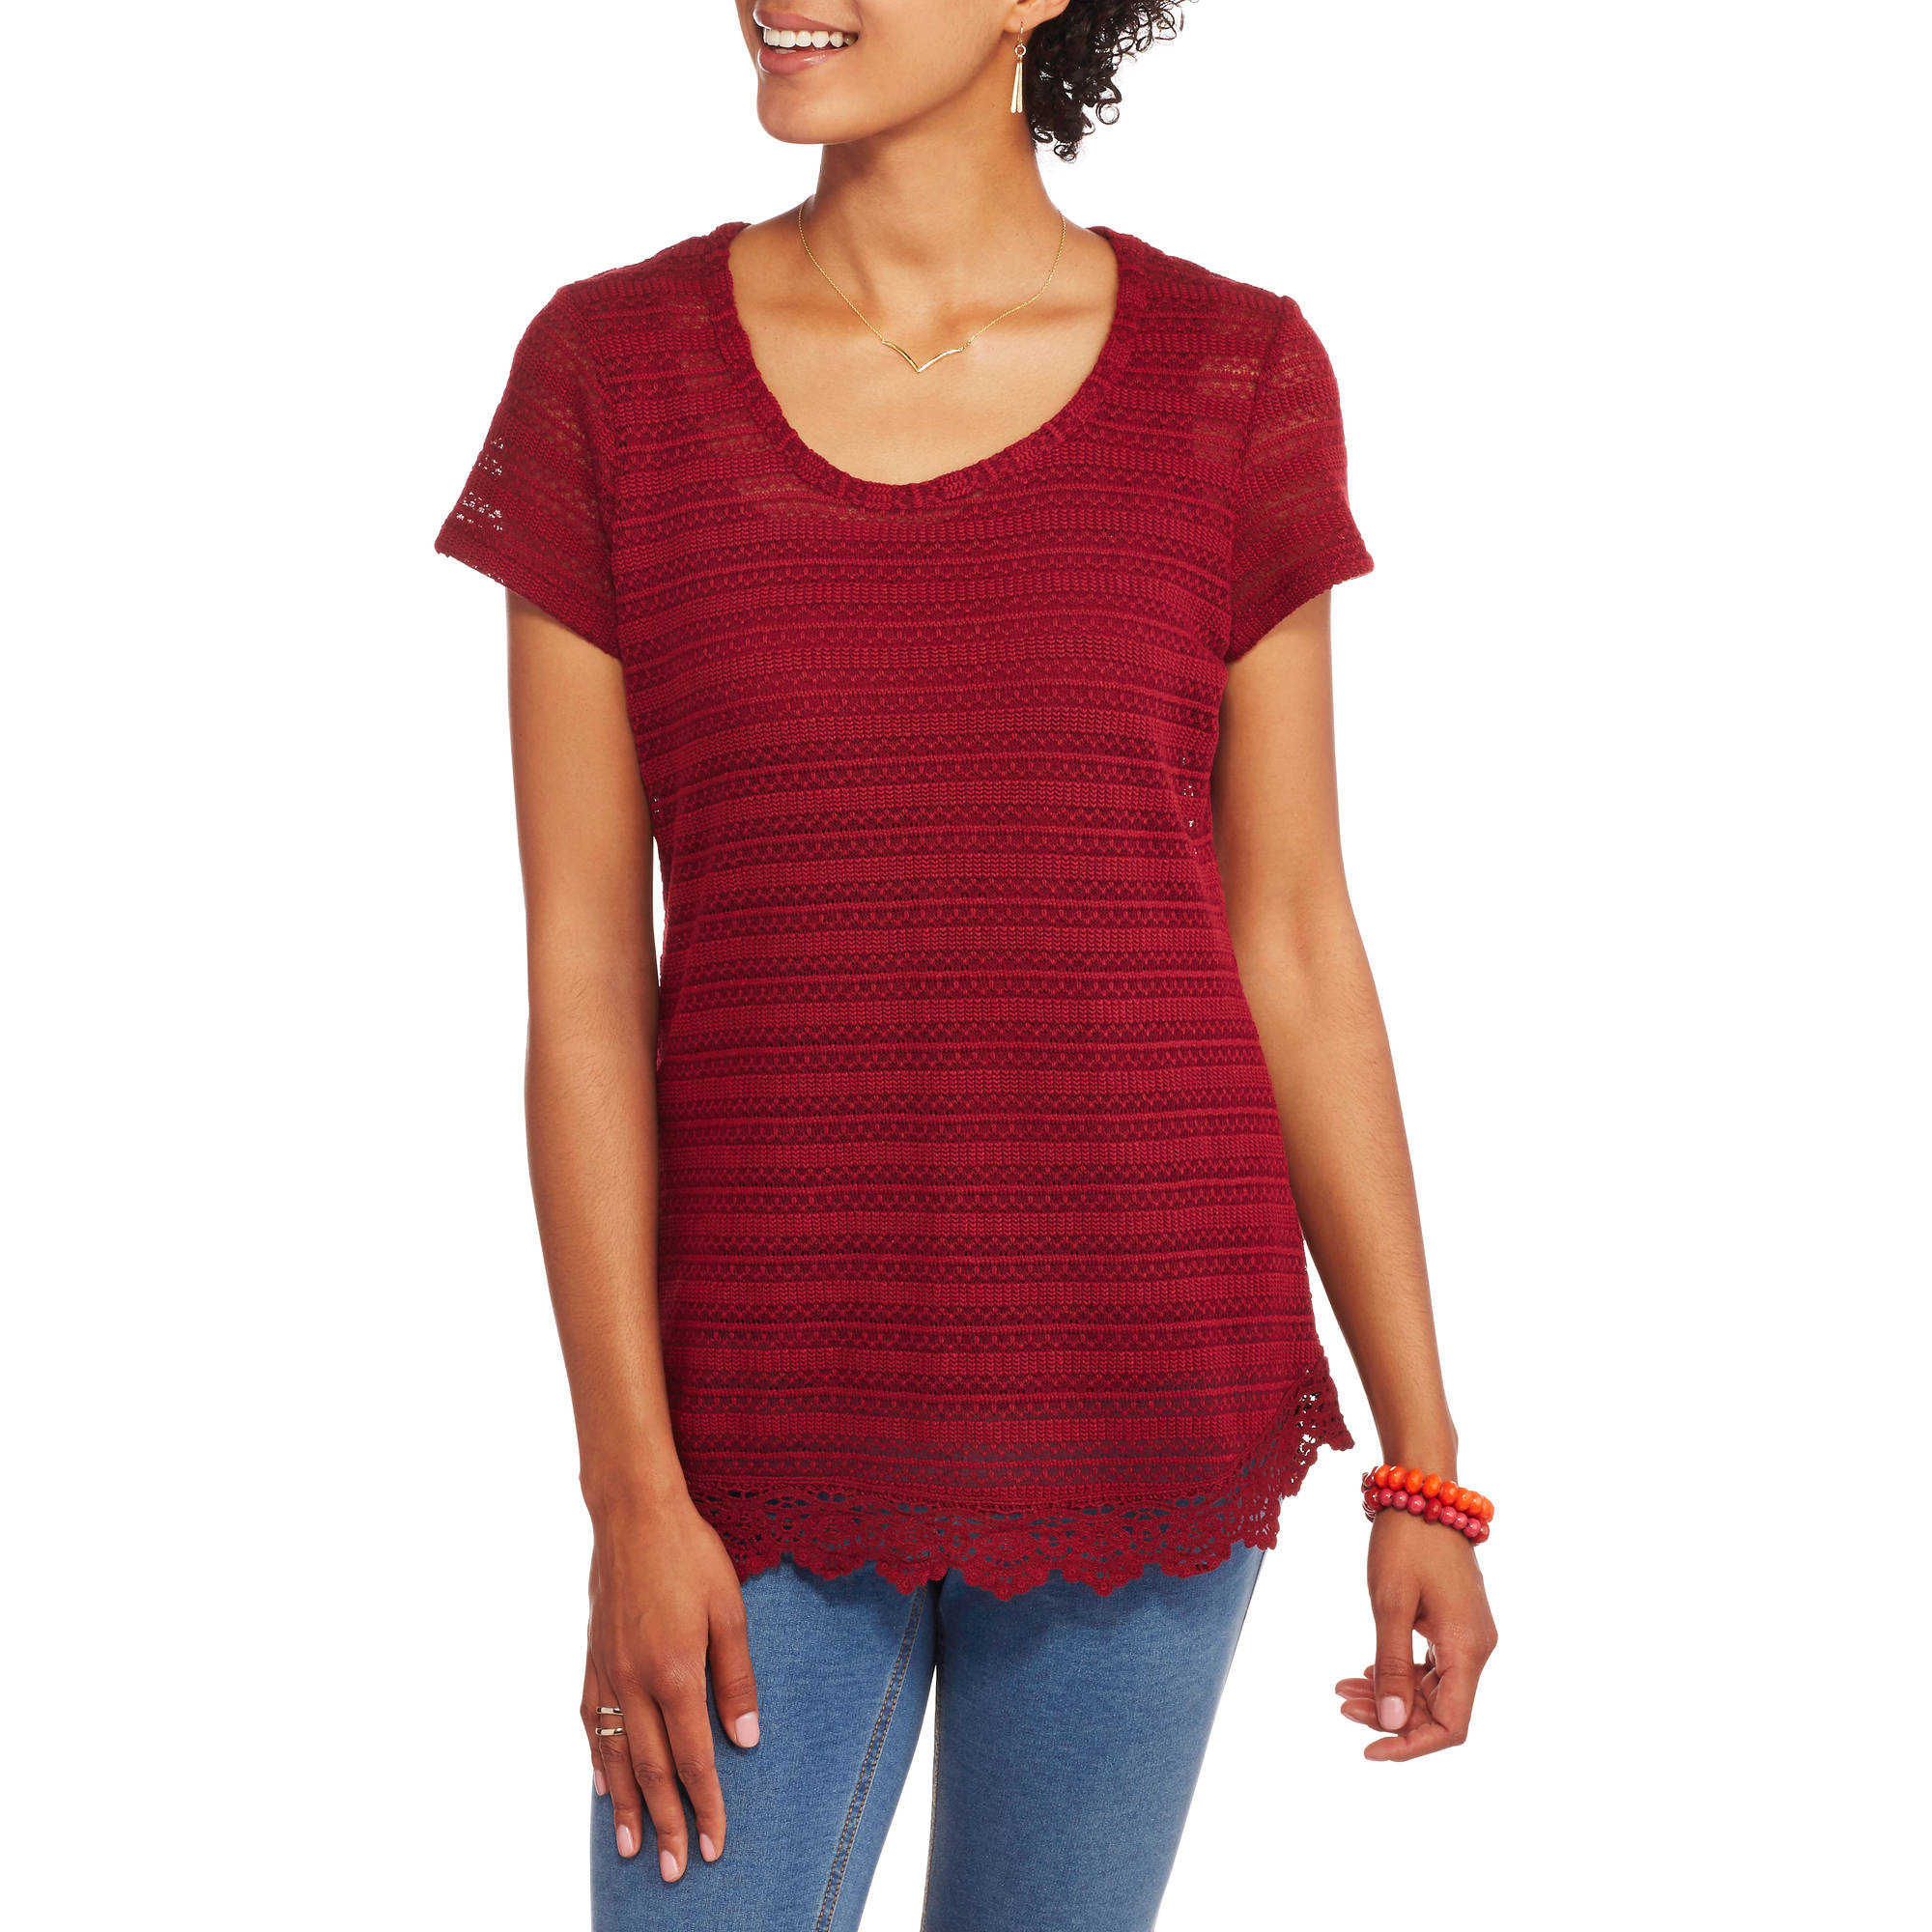 Image of Absolutely Famous Women's Striped 2fer Top with Crochet Trim